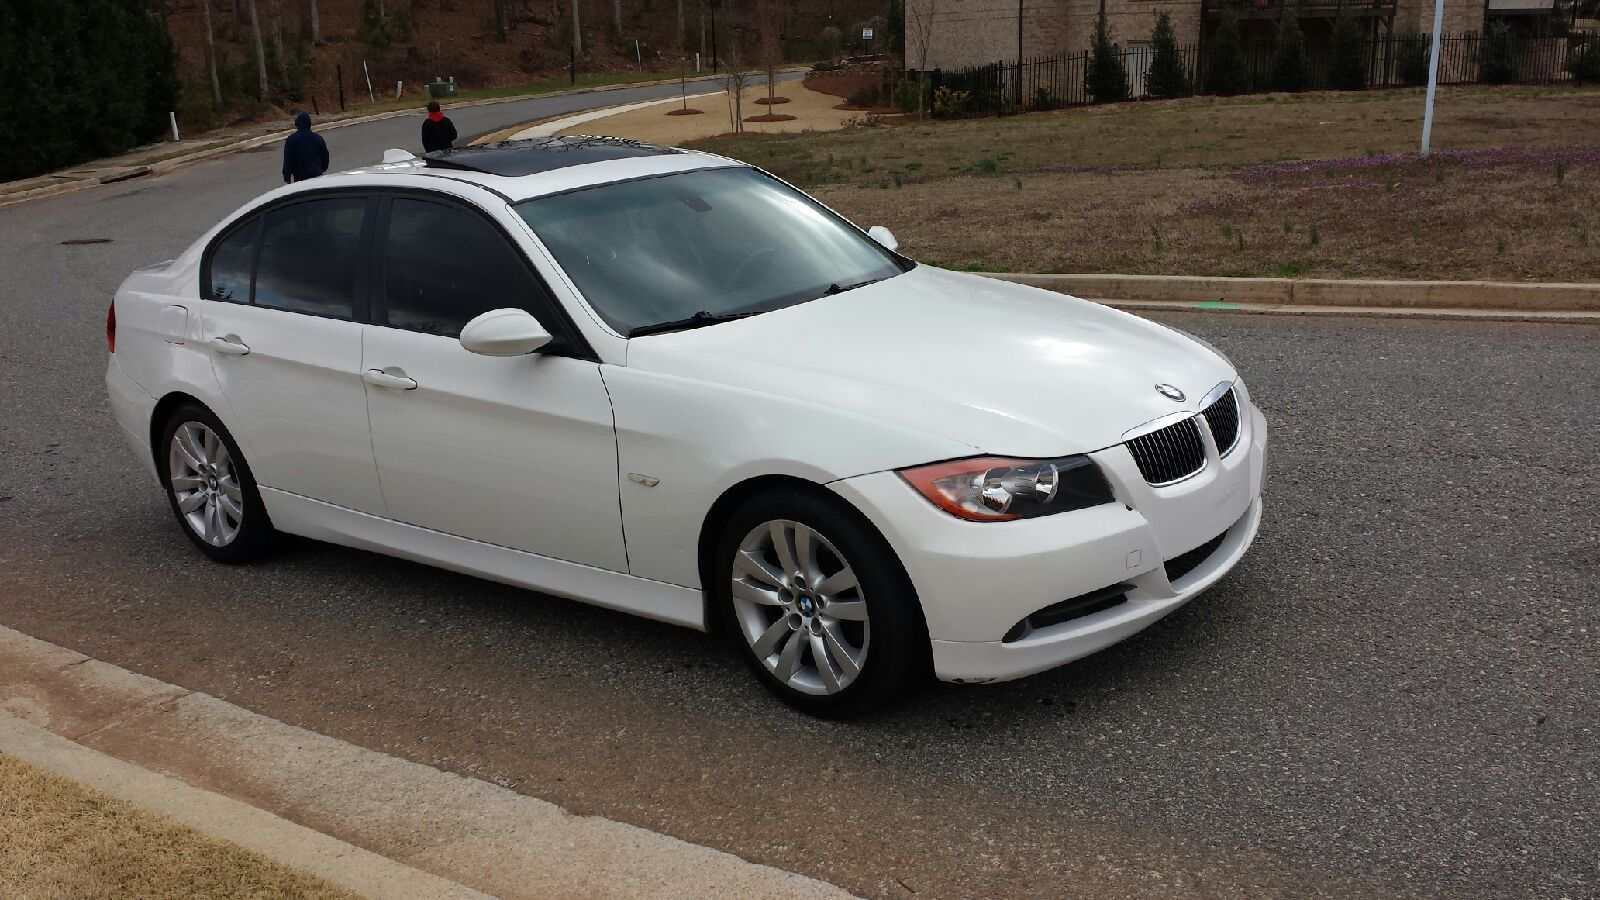 2006 Bmw 325xi >> Pin by Stephanie Martini on style | Sell used car, Girly car, Bmw